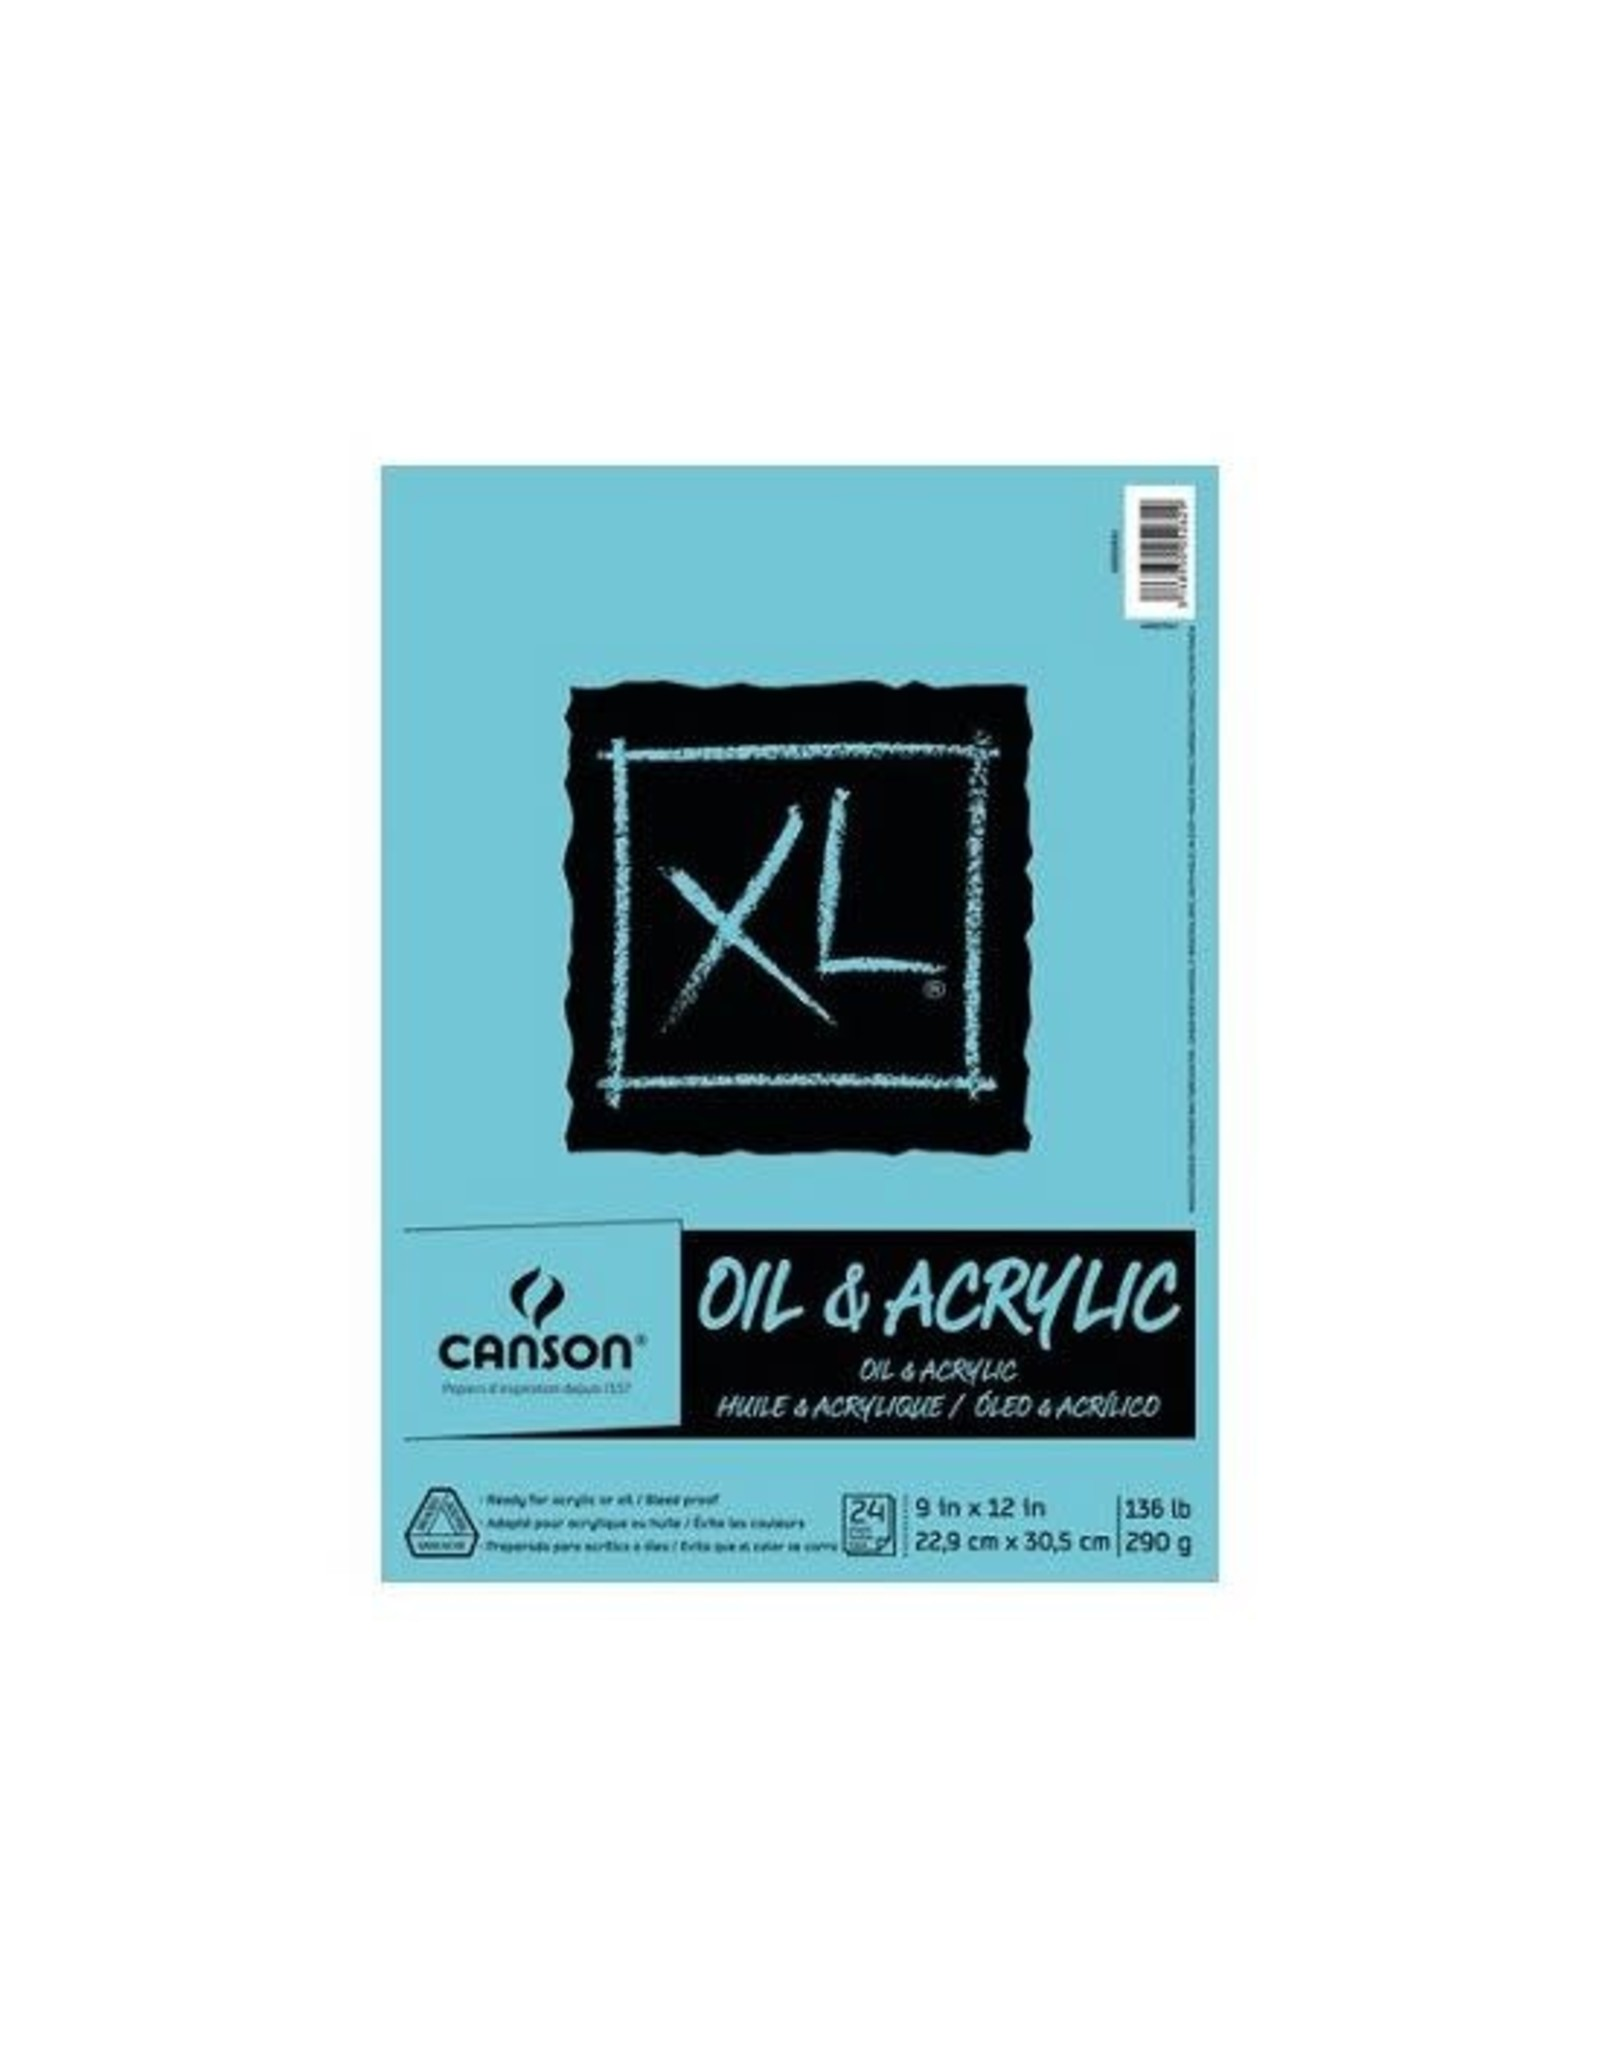 Canson ART PAPER PAD- XL OIL & ACRYLIC, 9X12 FOLDOVER, 24 SHEETS